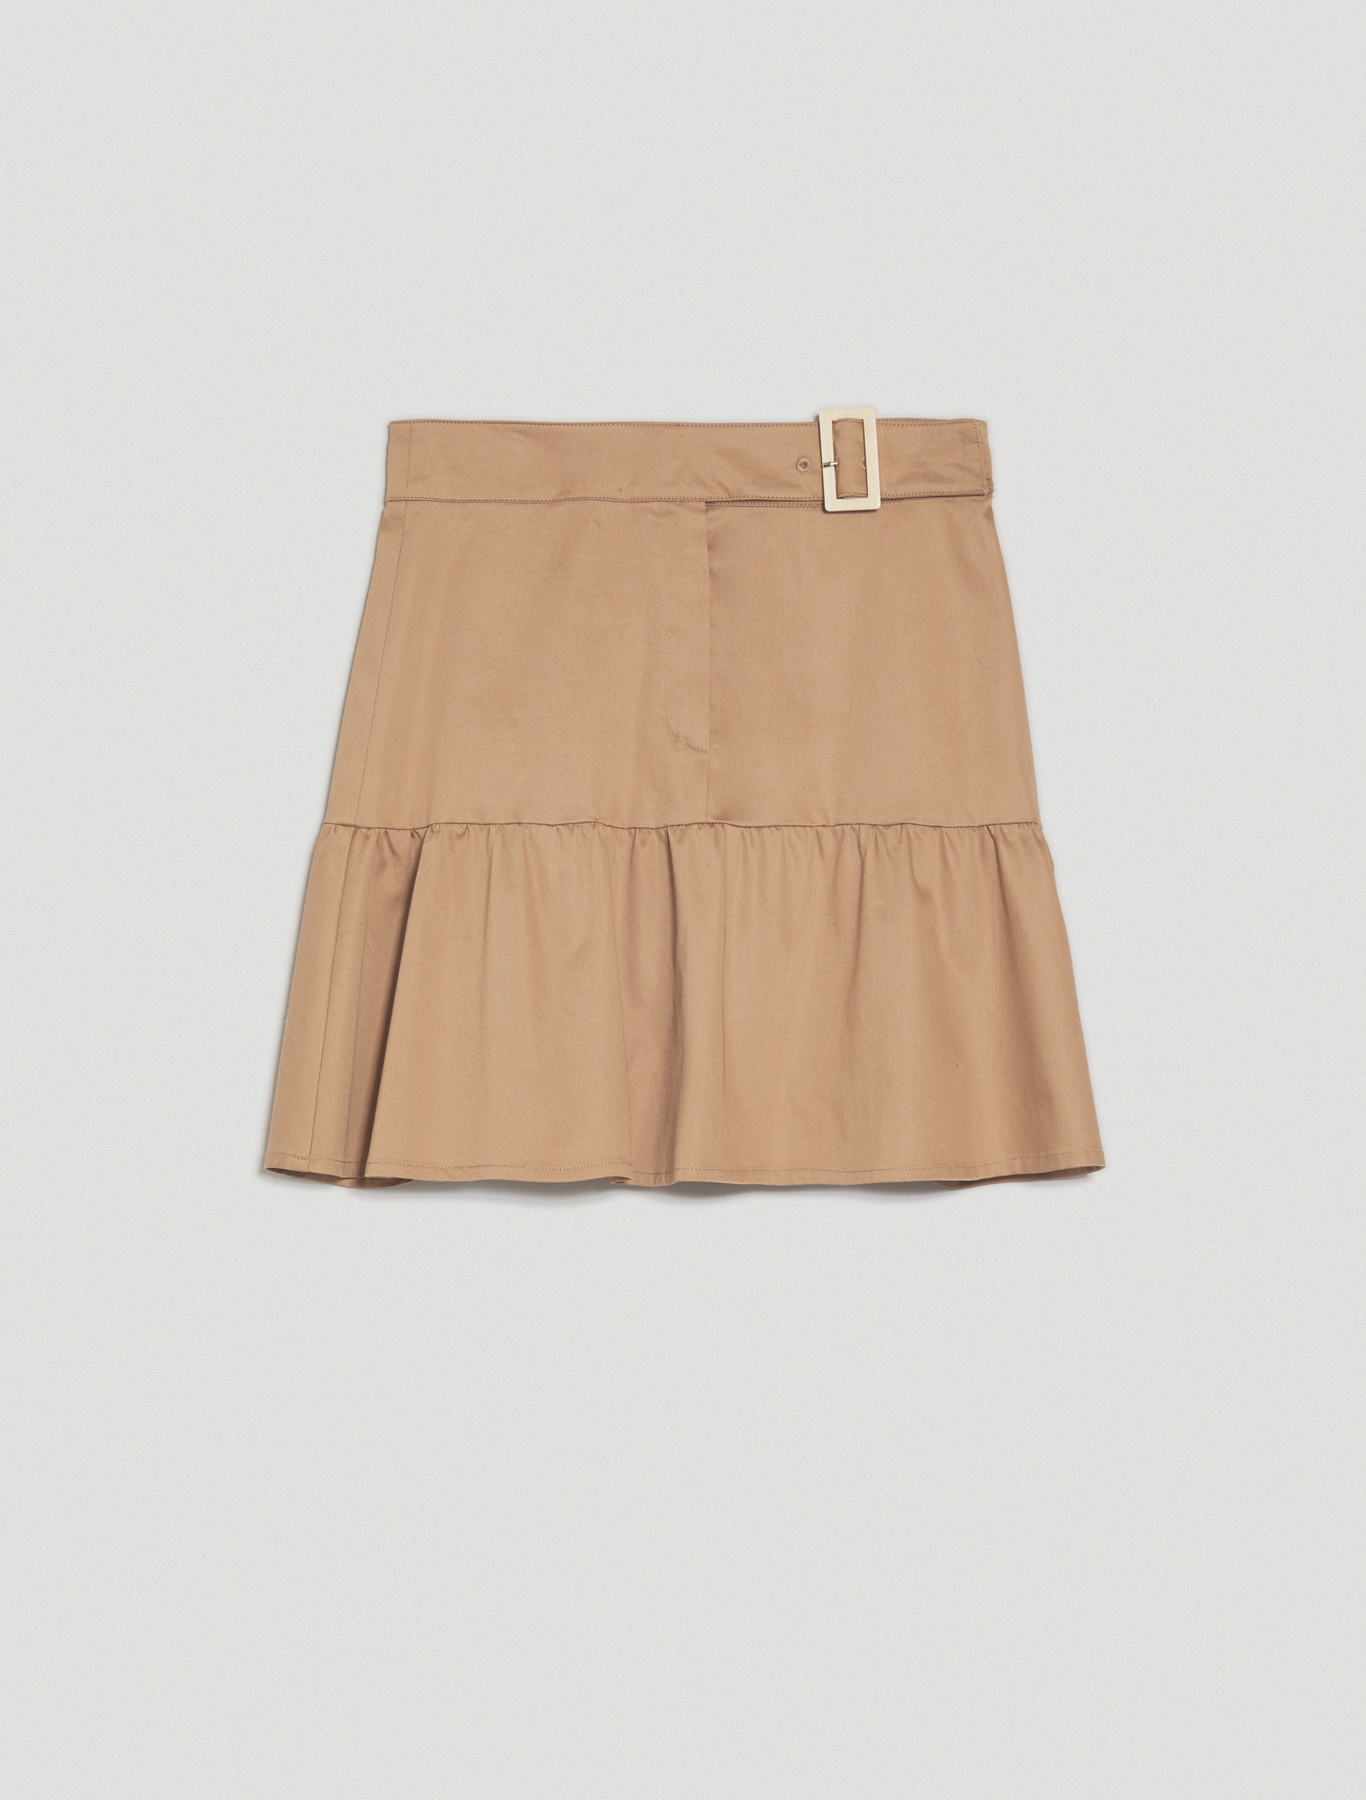 Cotton satin skirt - hazelnut - pennyblack